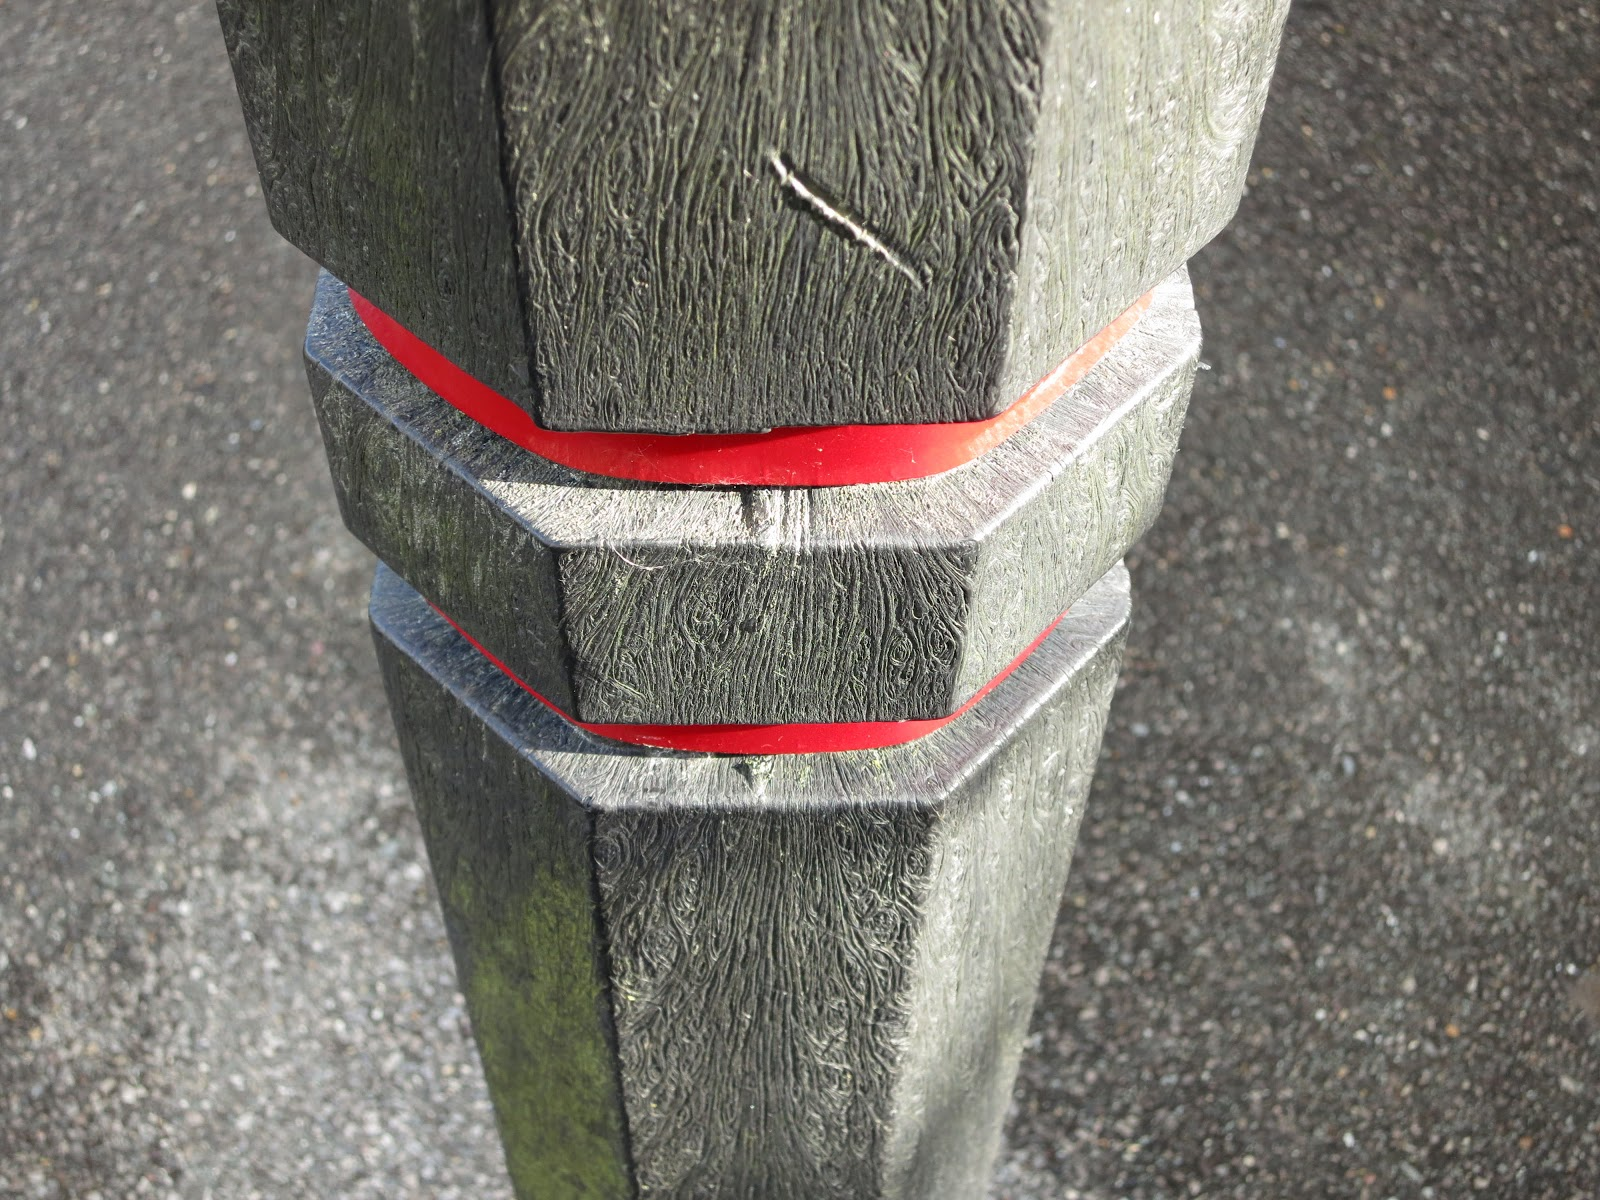 Scratched, plastic post with red bands